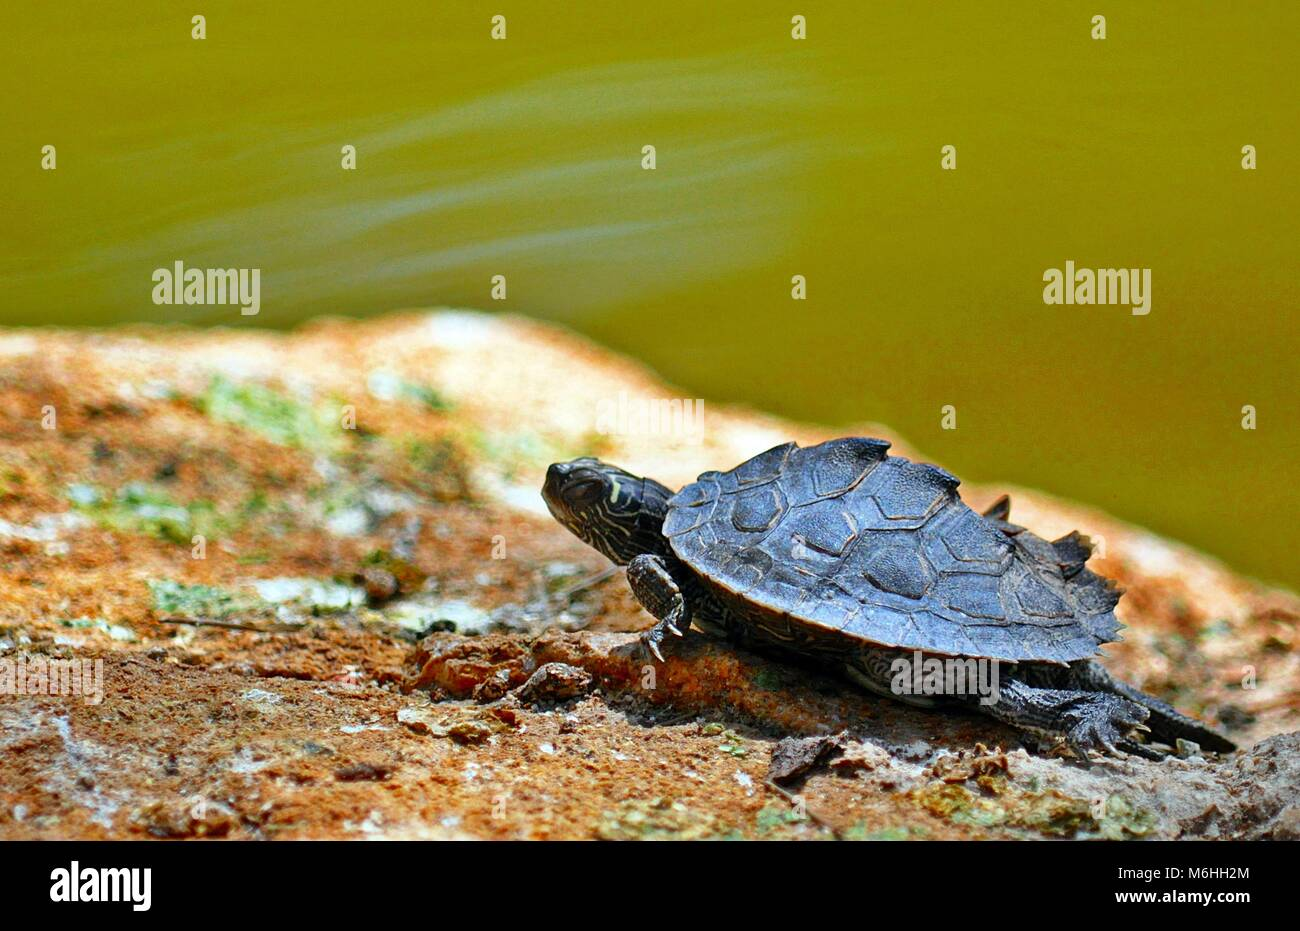 Small pet Turtle over a rock on a lake - Stock Image